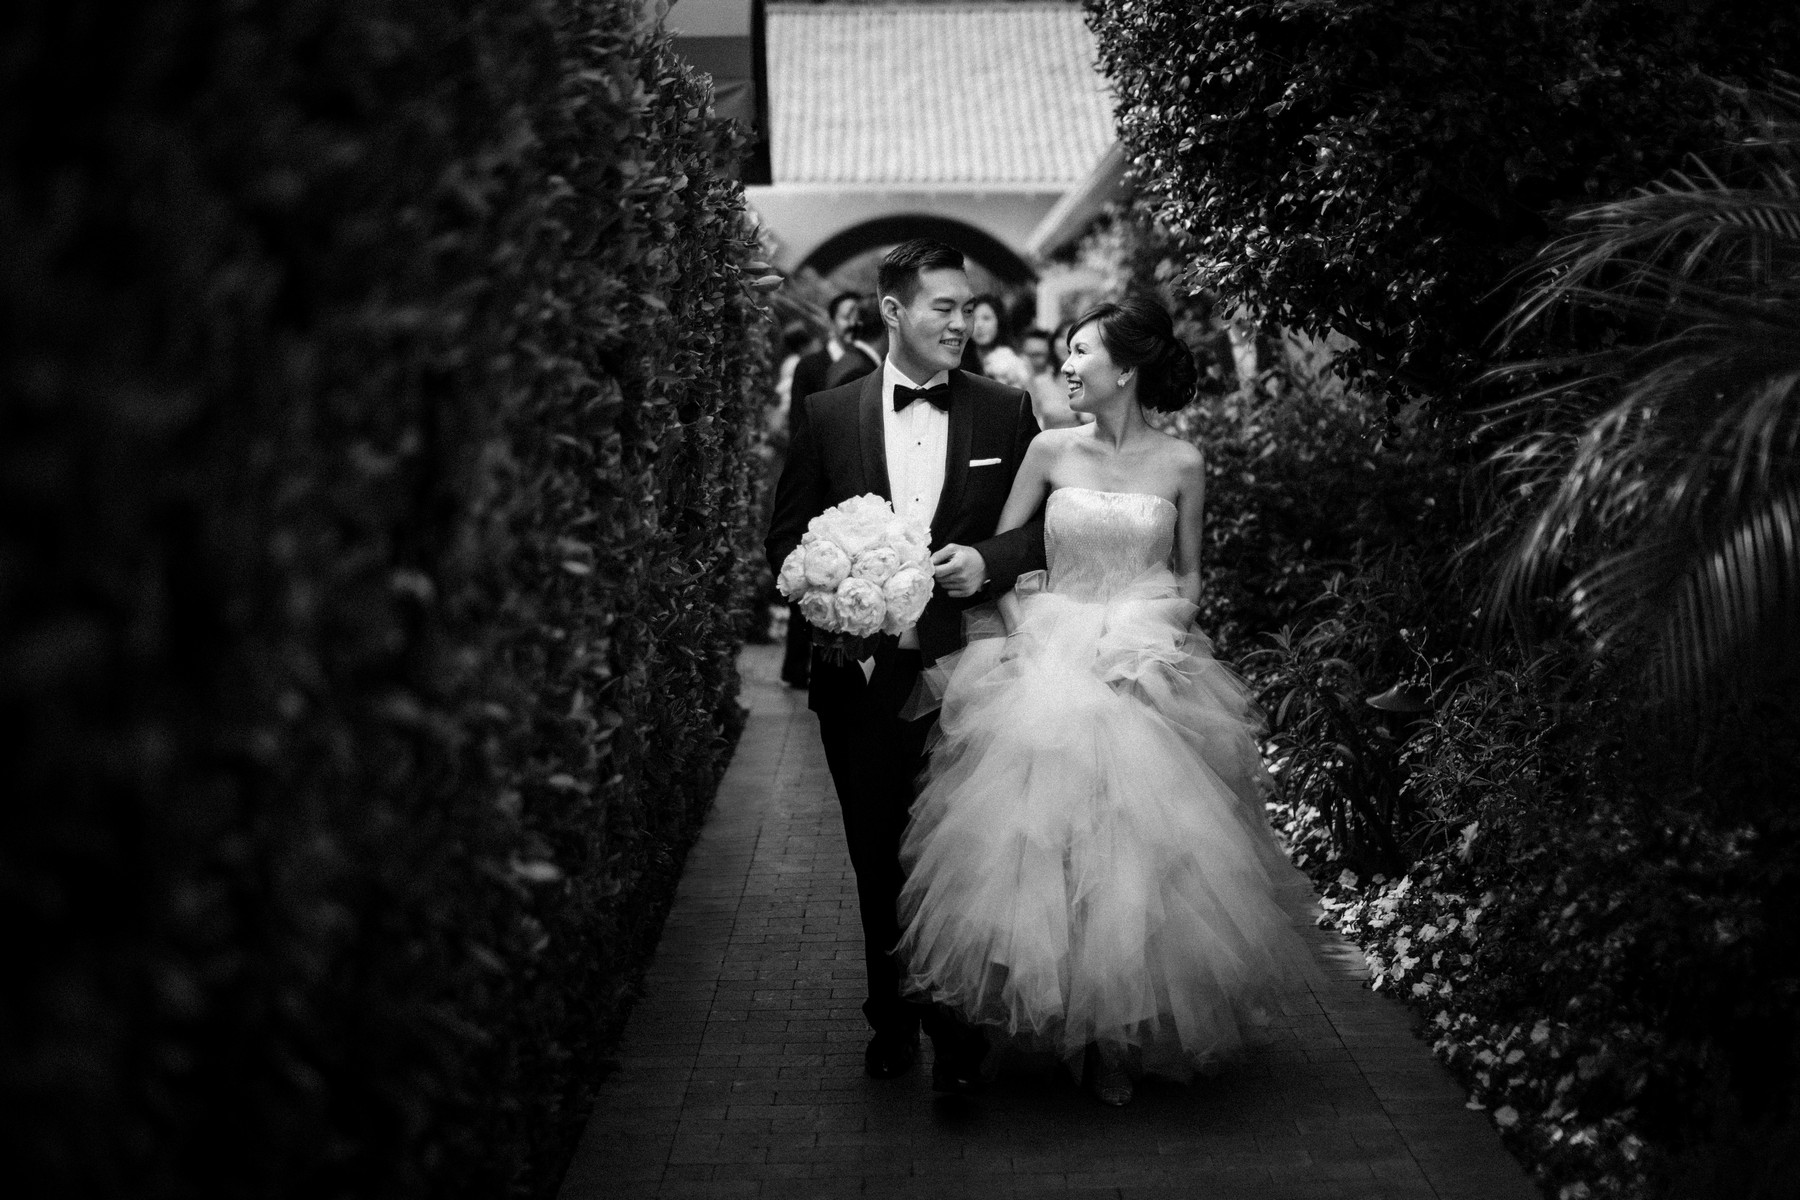 Couple leaving ceremony ahead of guests - John and Joseph Photography